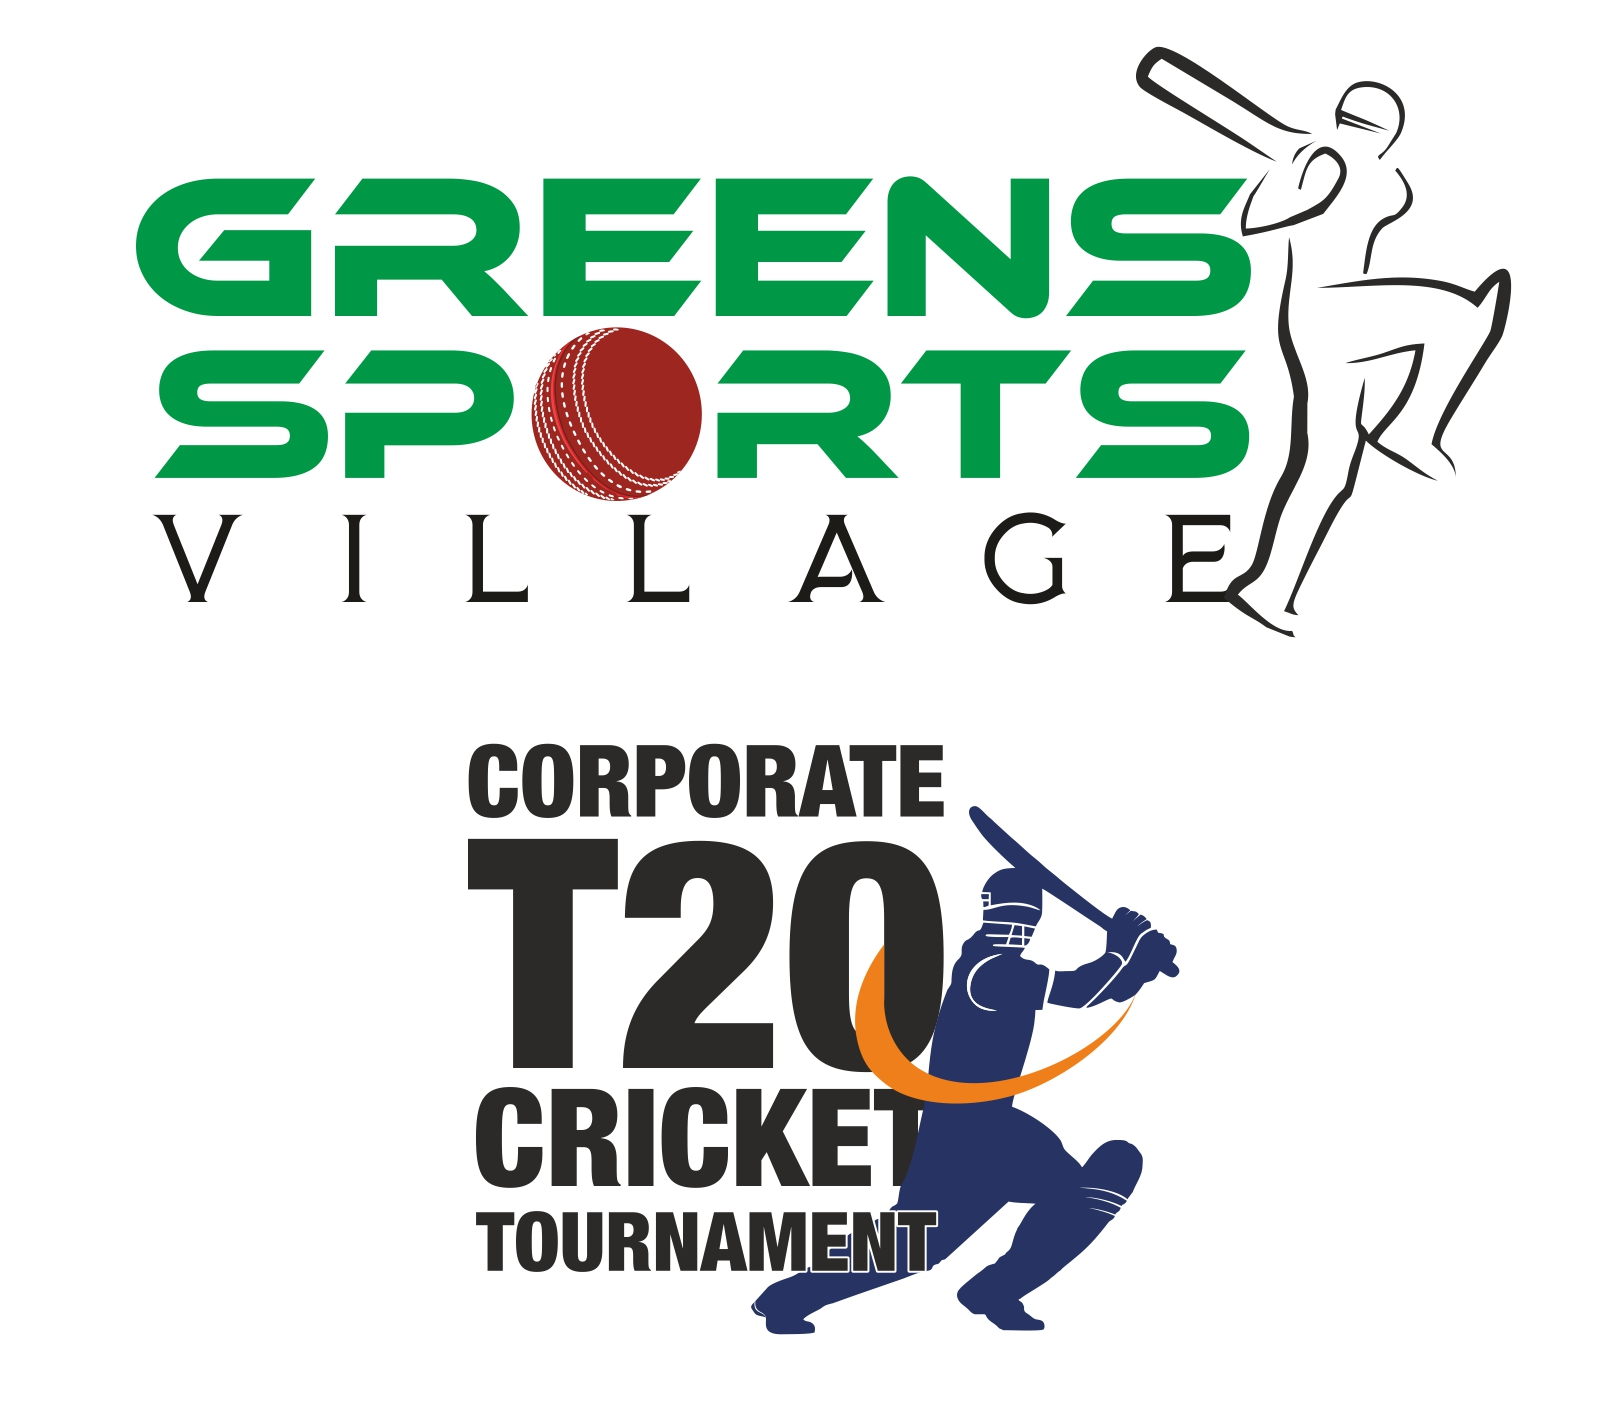 Invitation For Corporate Cricket Tournament: GREENS SPORTS VILLAGE Corporate T20 Cricket Tournament